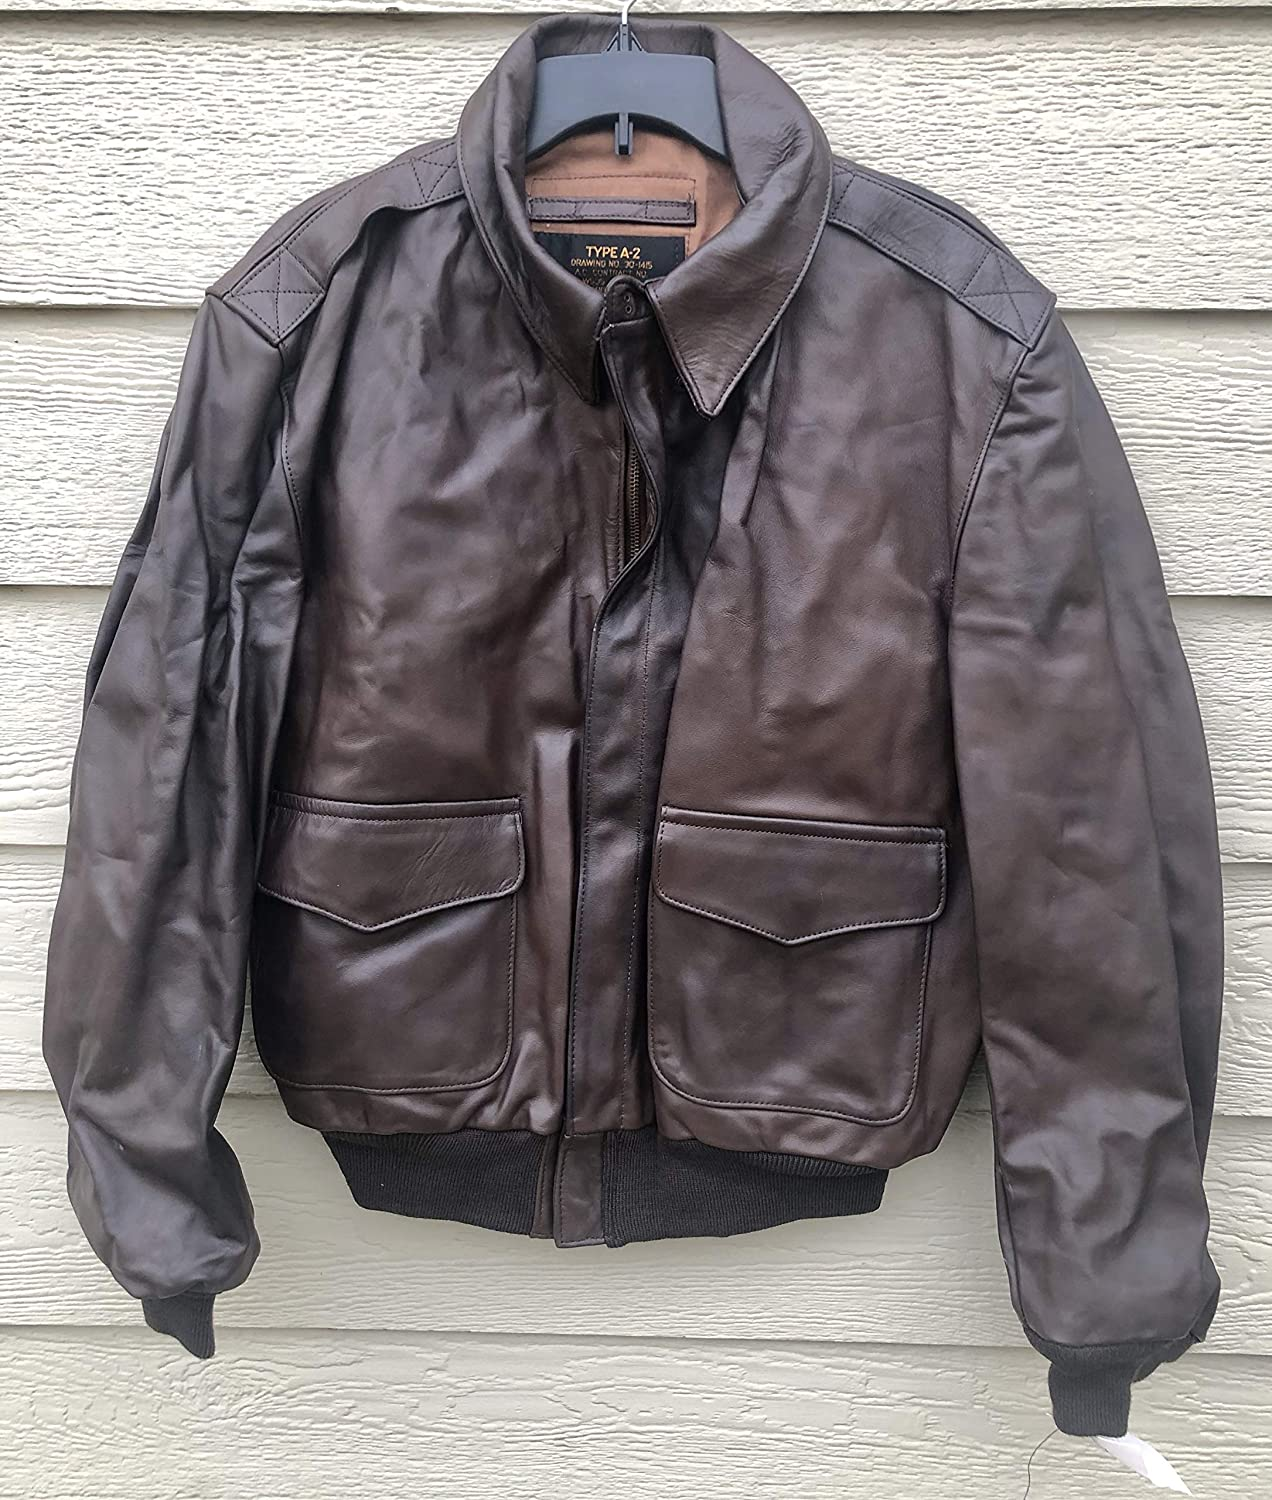 US Army Air Force Genuine Leather A-2 Bombers Flyers Men's Flight Jacket - Size 46.